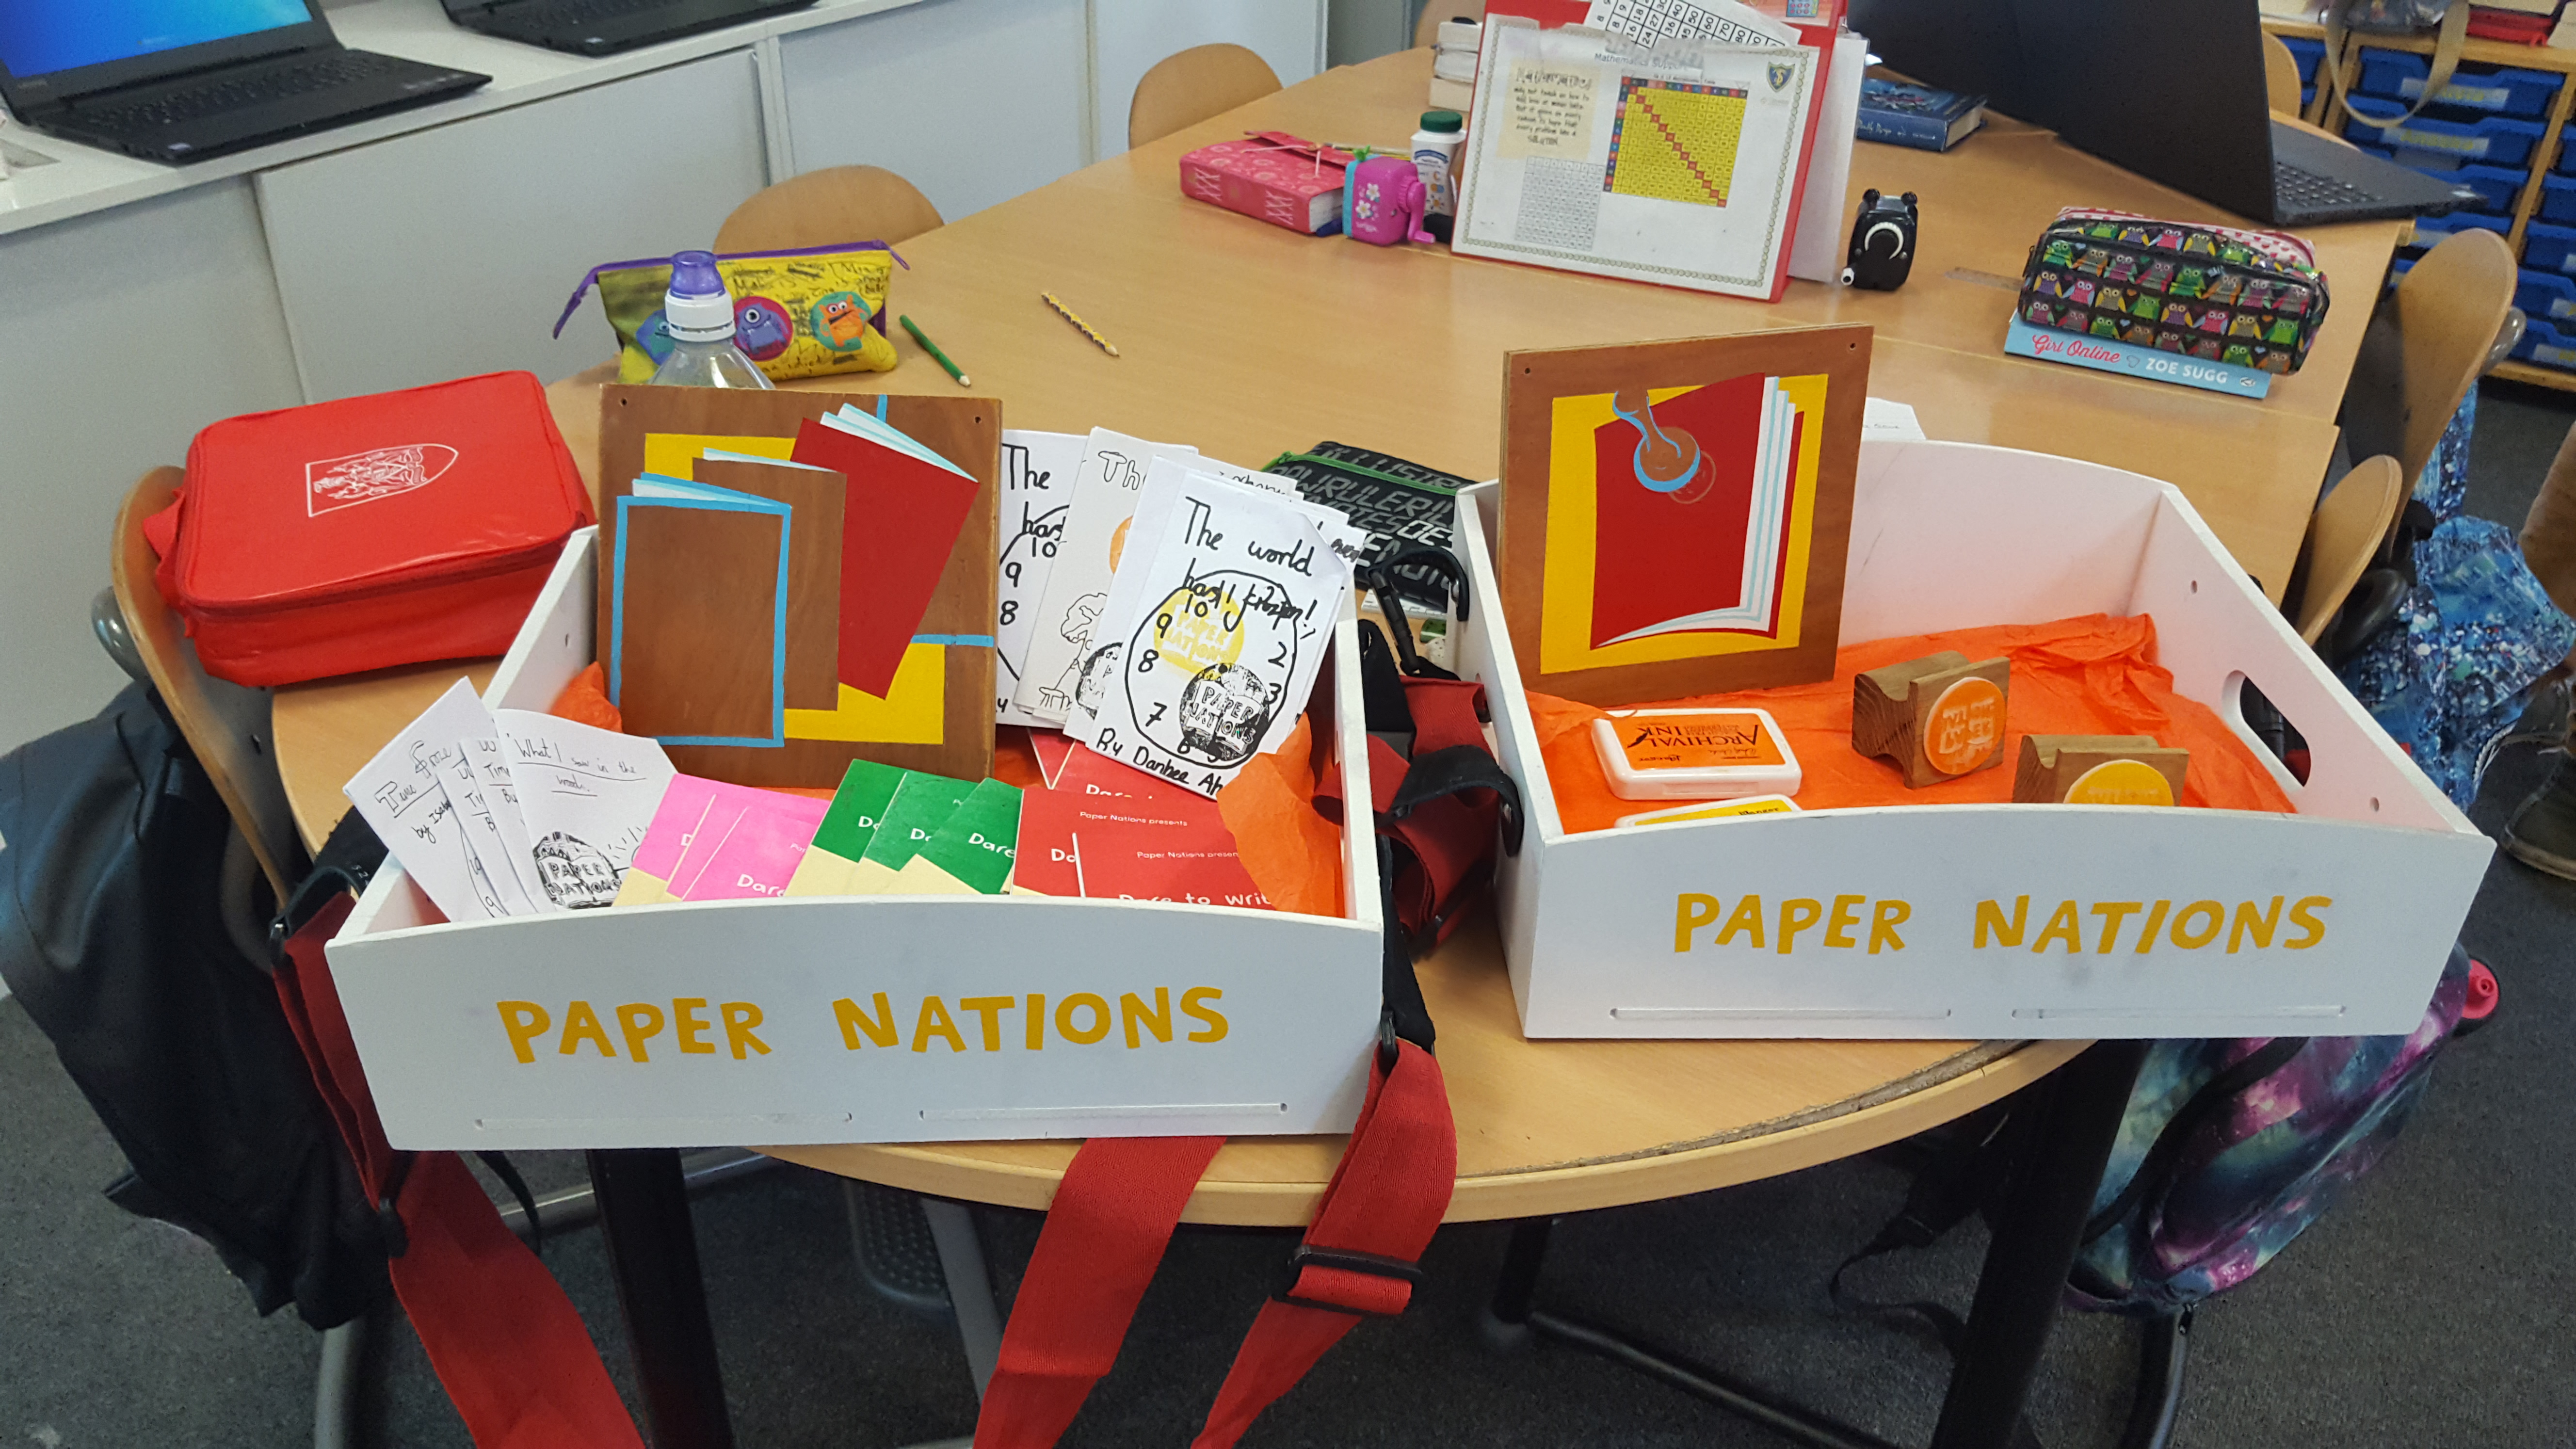 Paper Nations box